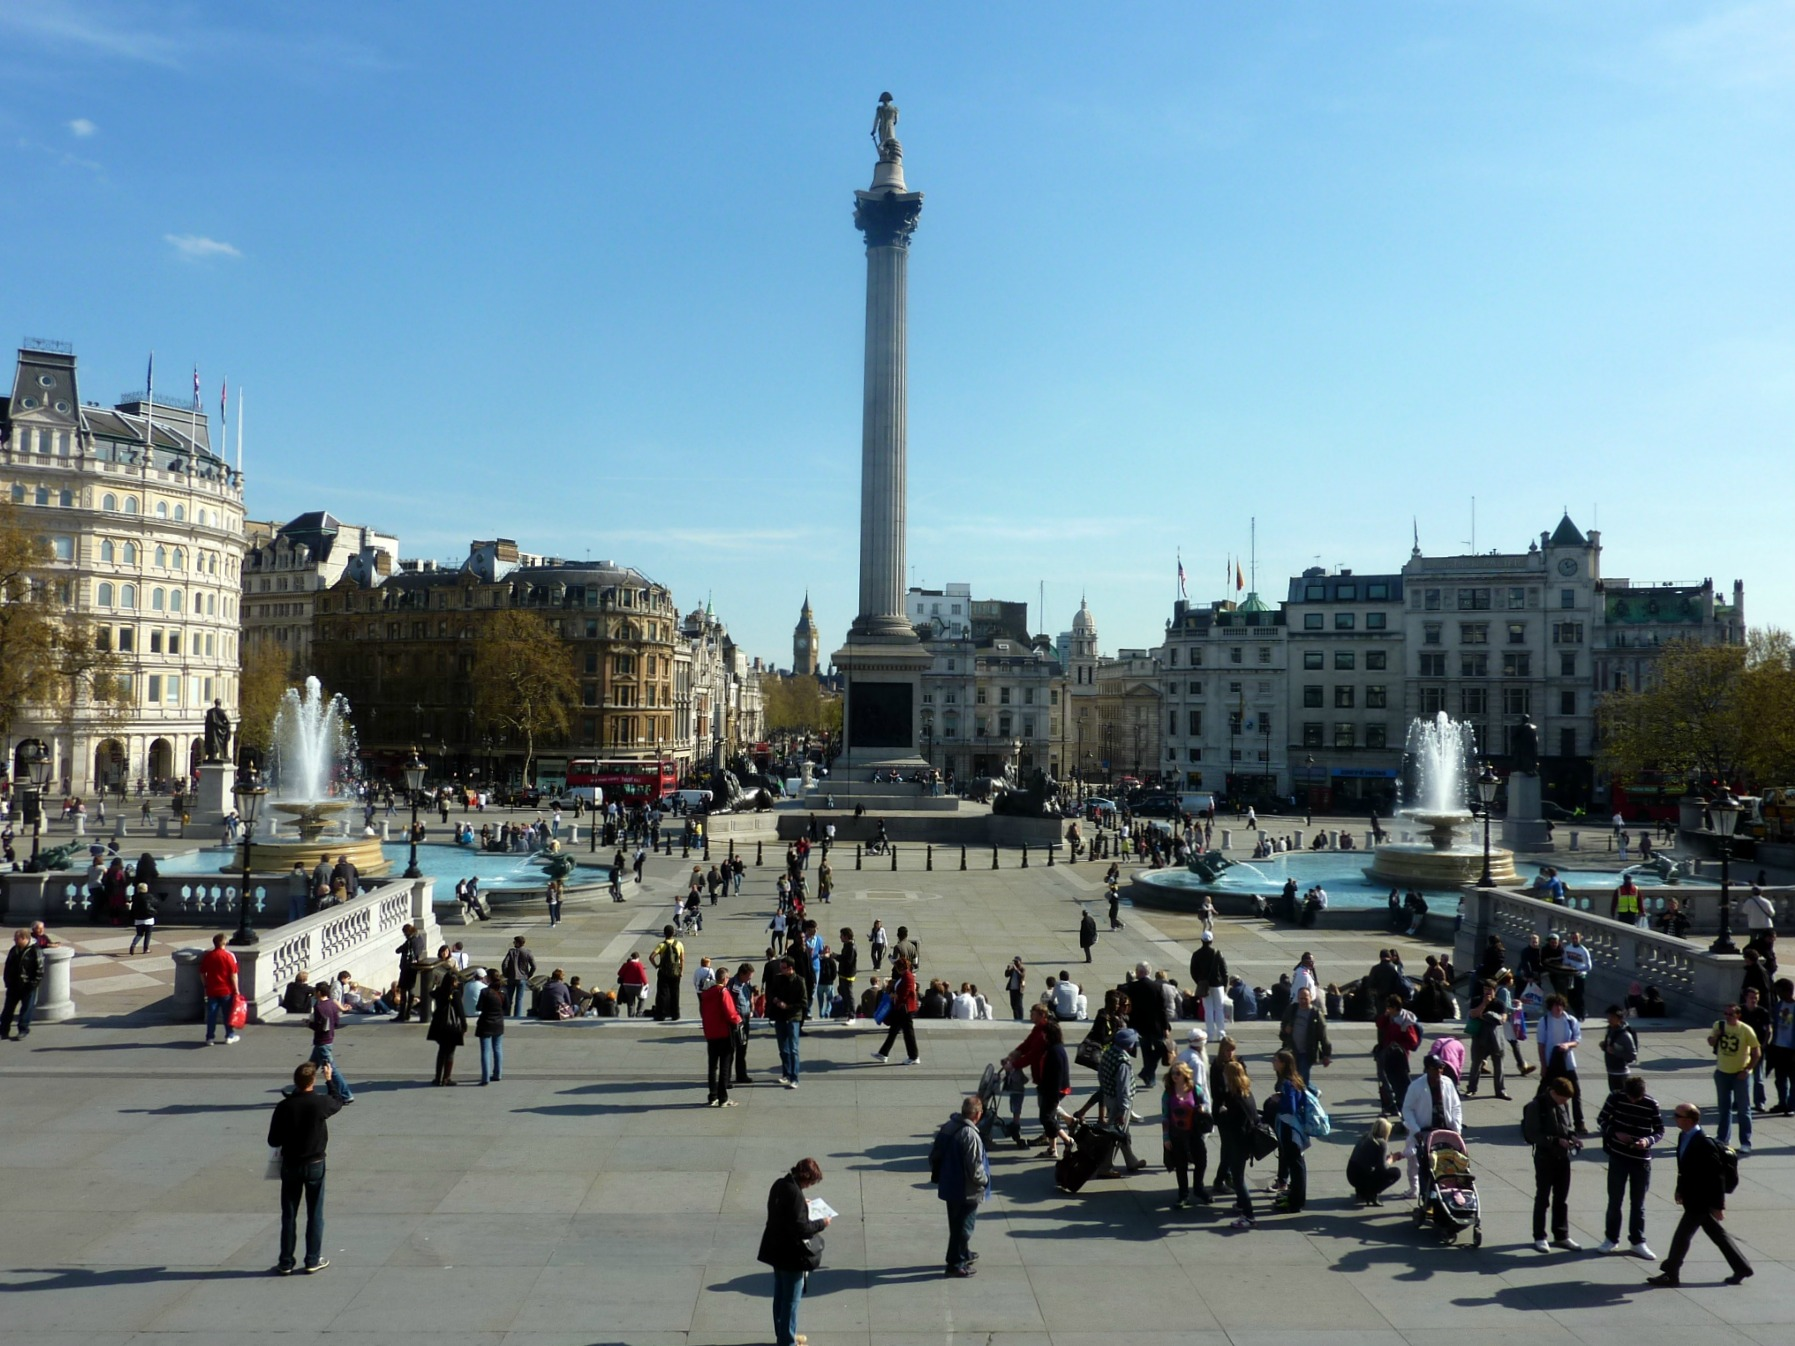 Trafalgar Square in October